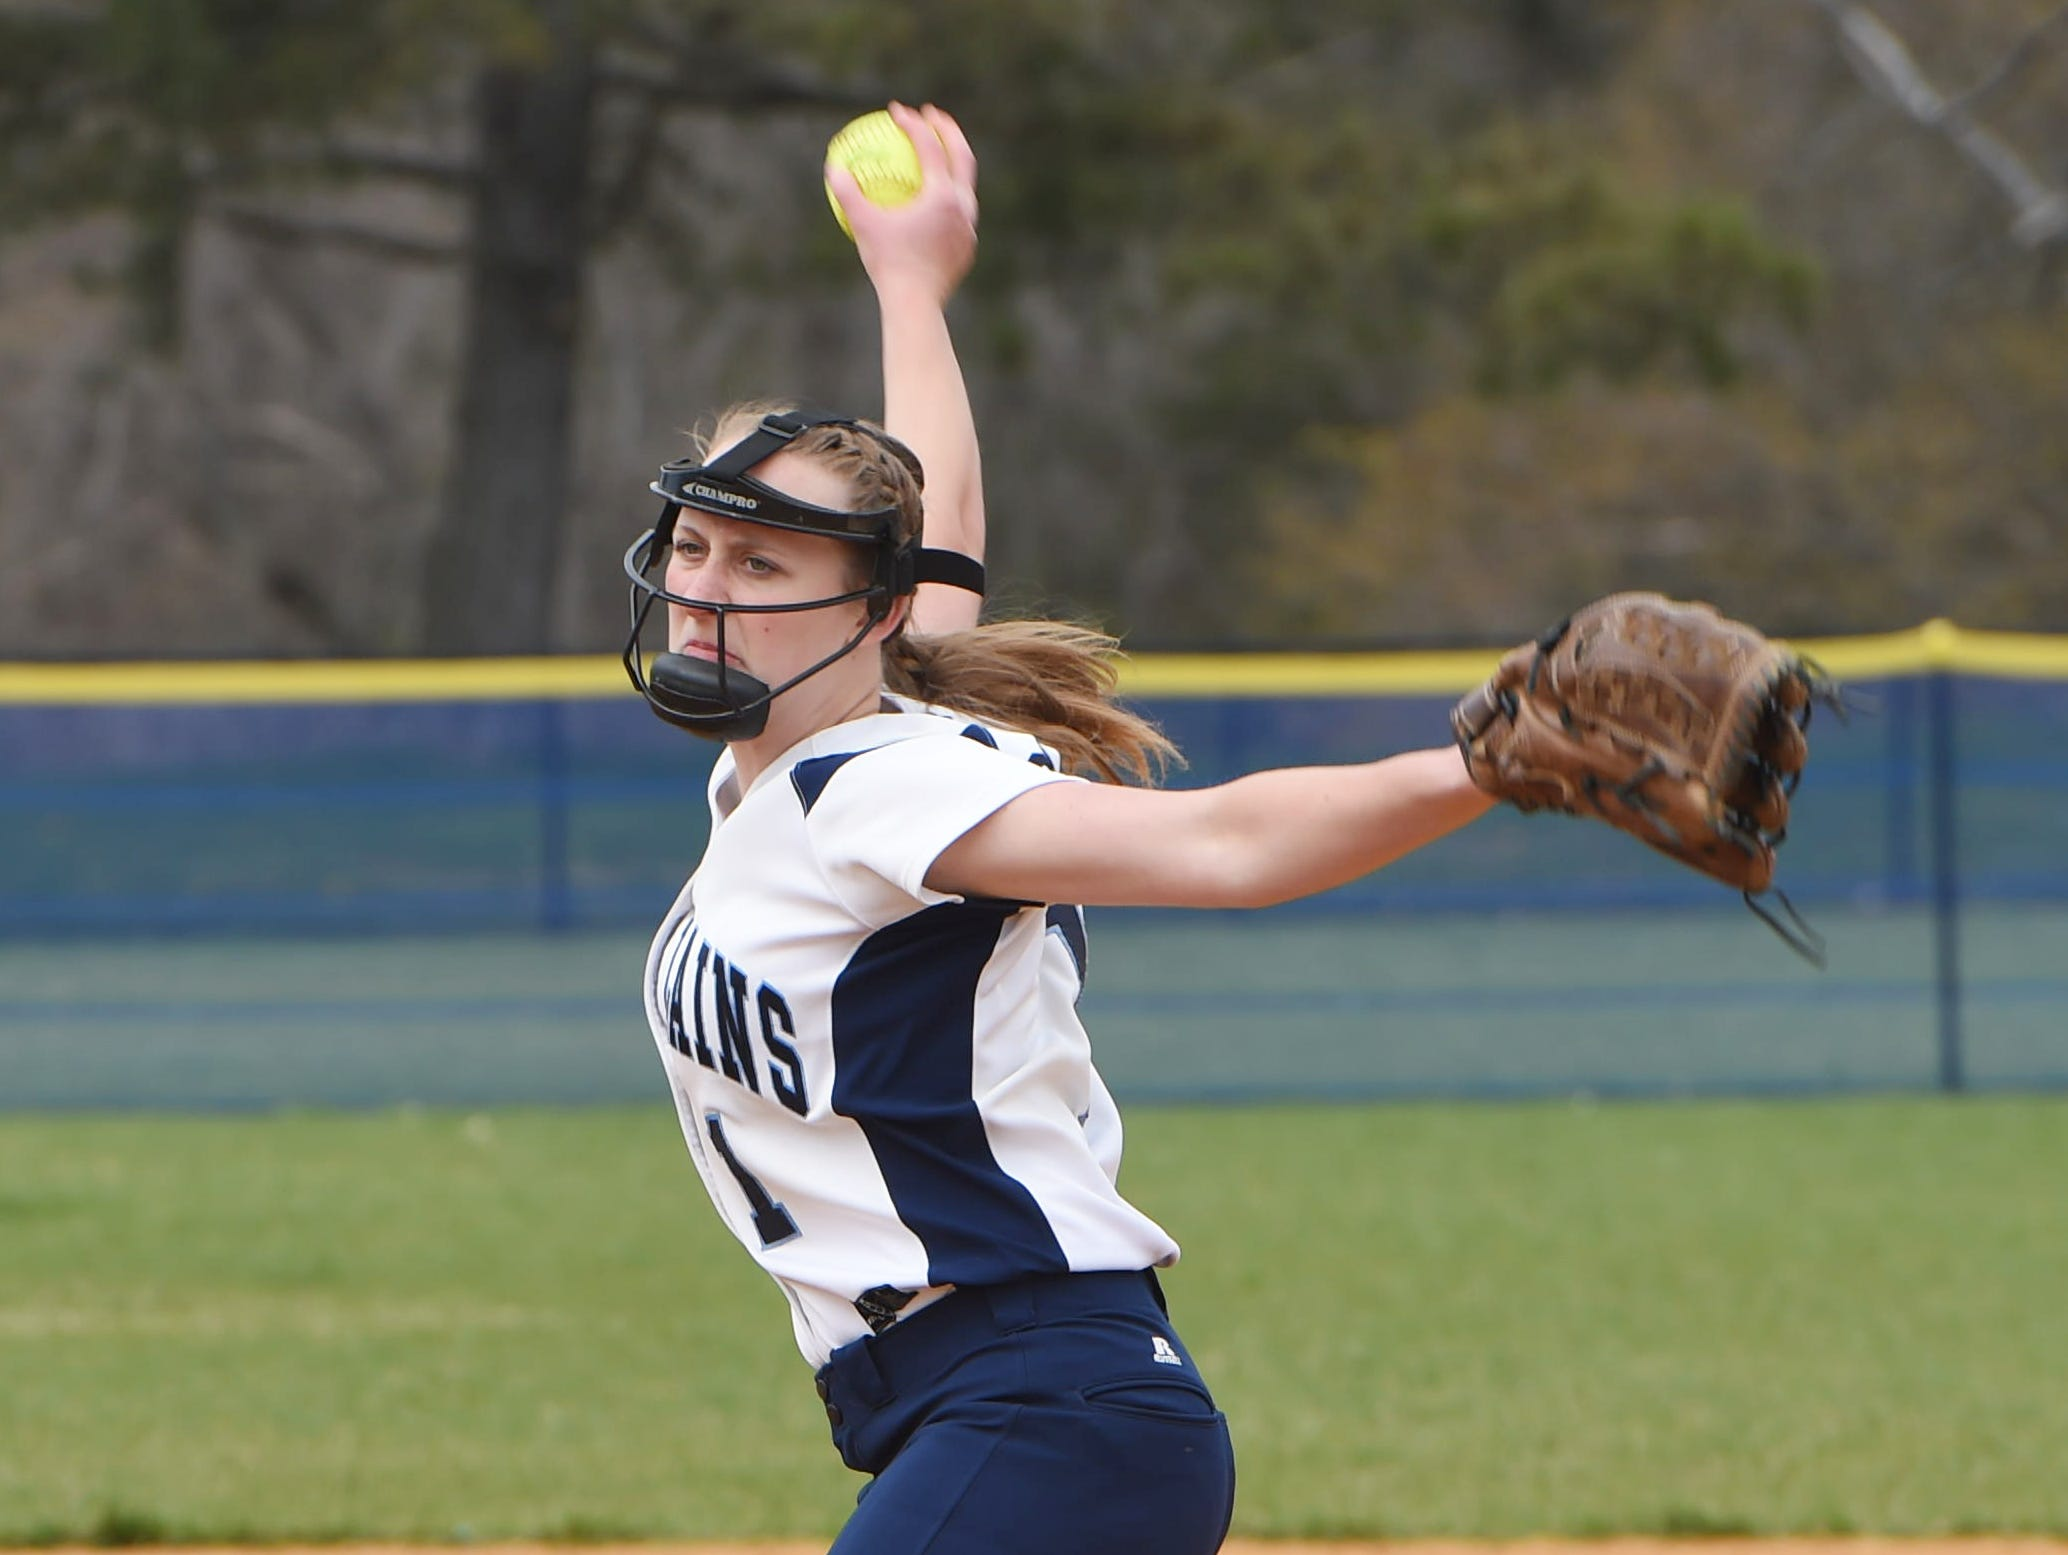 Pine Plains' Alex McKenzie winds up a throw during Monday's game against Millbrook.